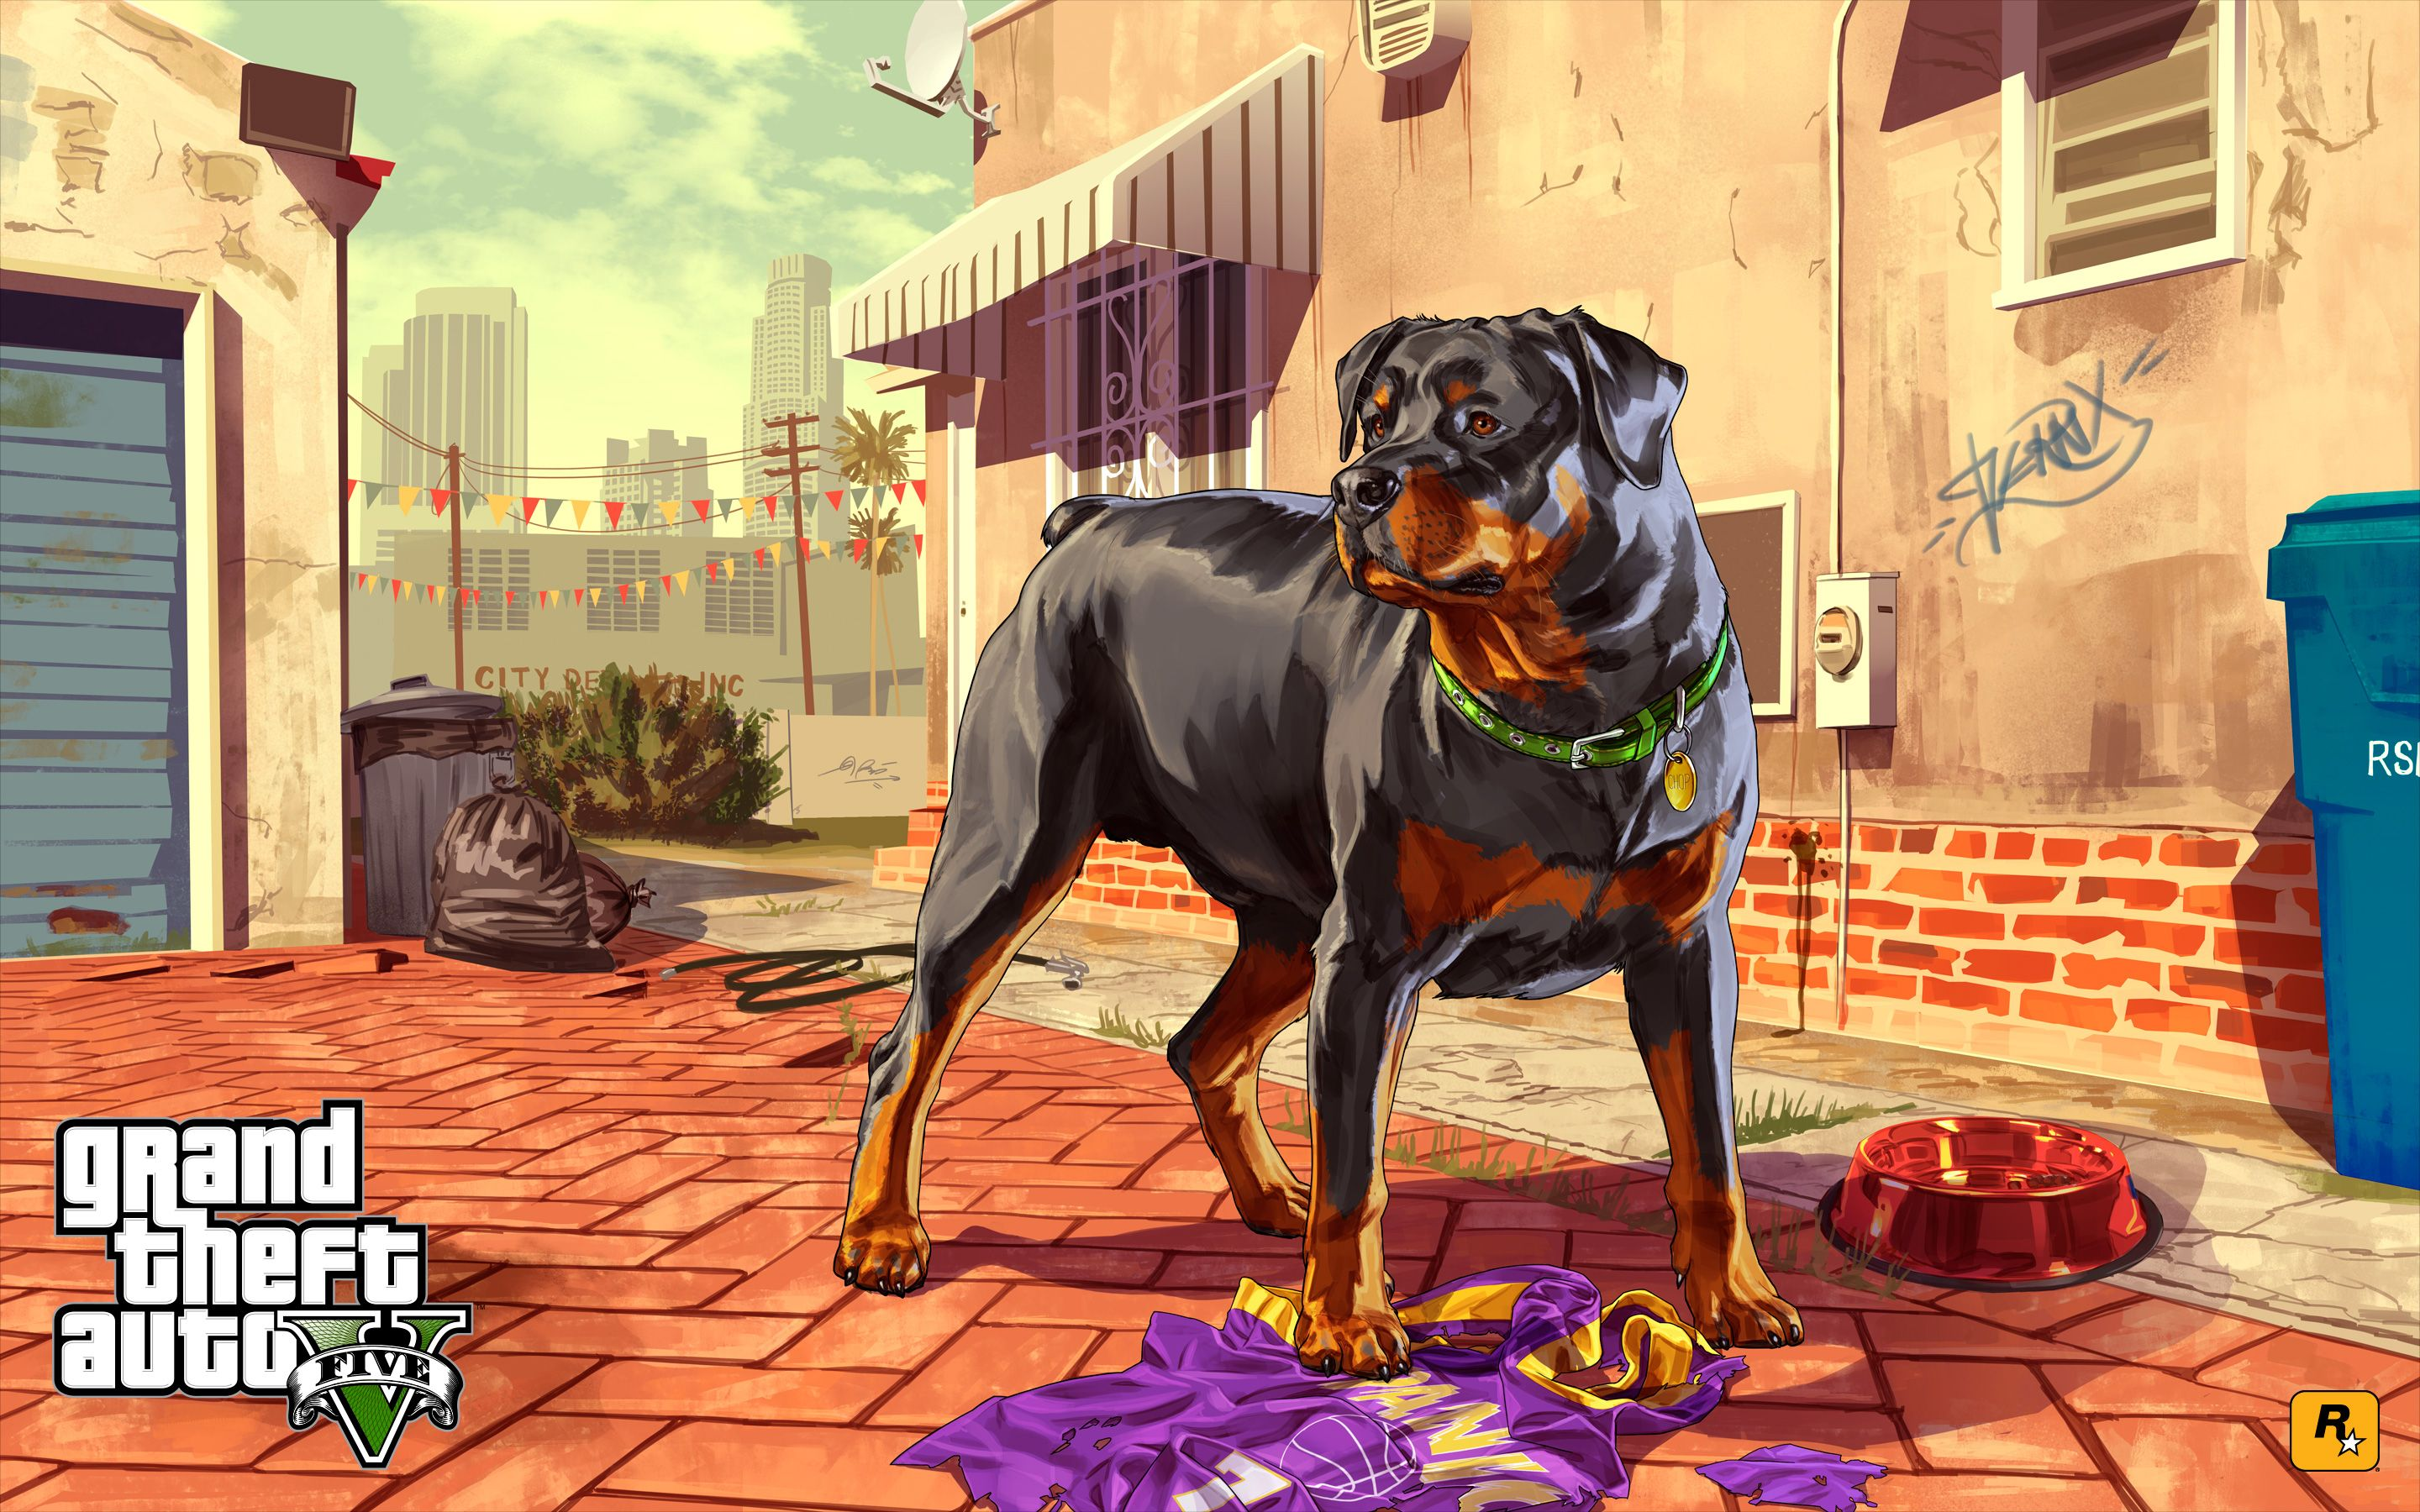 Gtav To Feature Breed Of Rare Dogs On Pc Version Rumor Is That Rockstar Will Be Introducing A Breed Of Rare Dogs In Grand Theft Auto V Next Year  On Pc